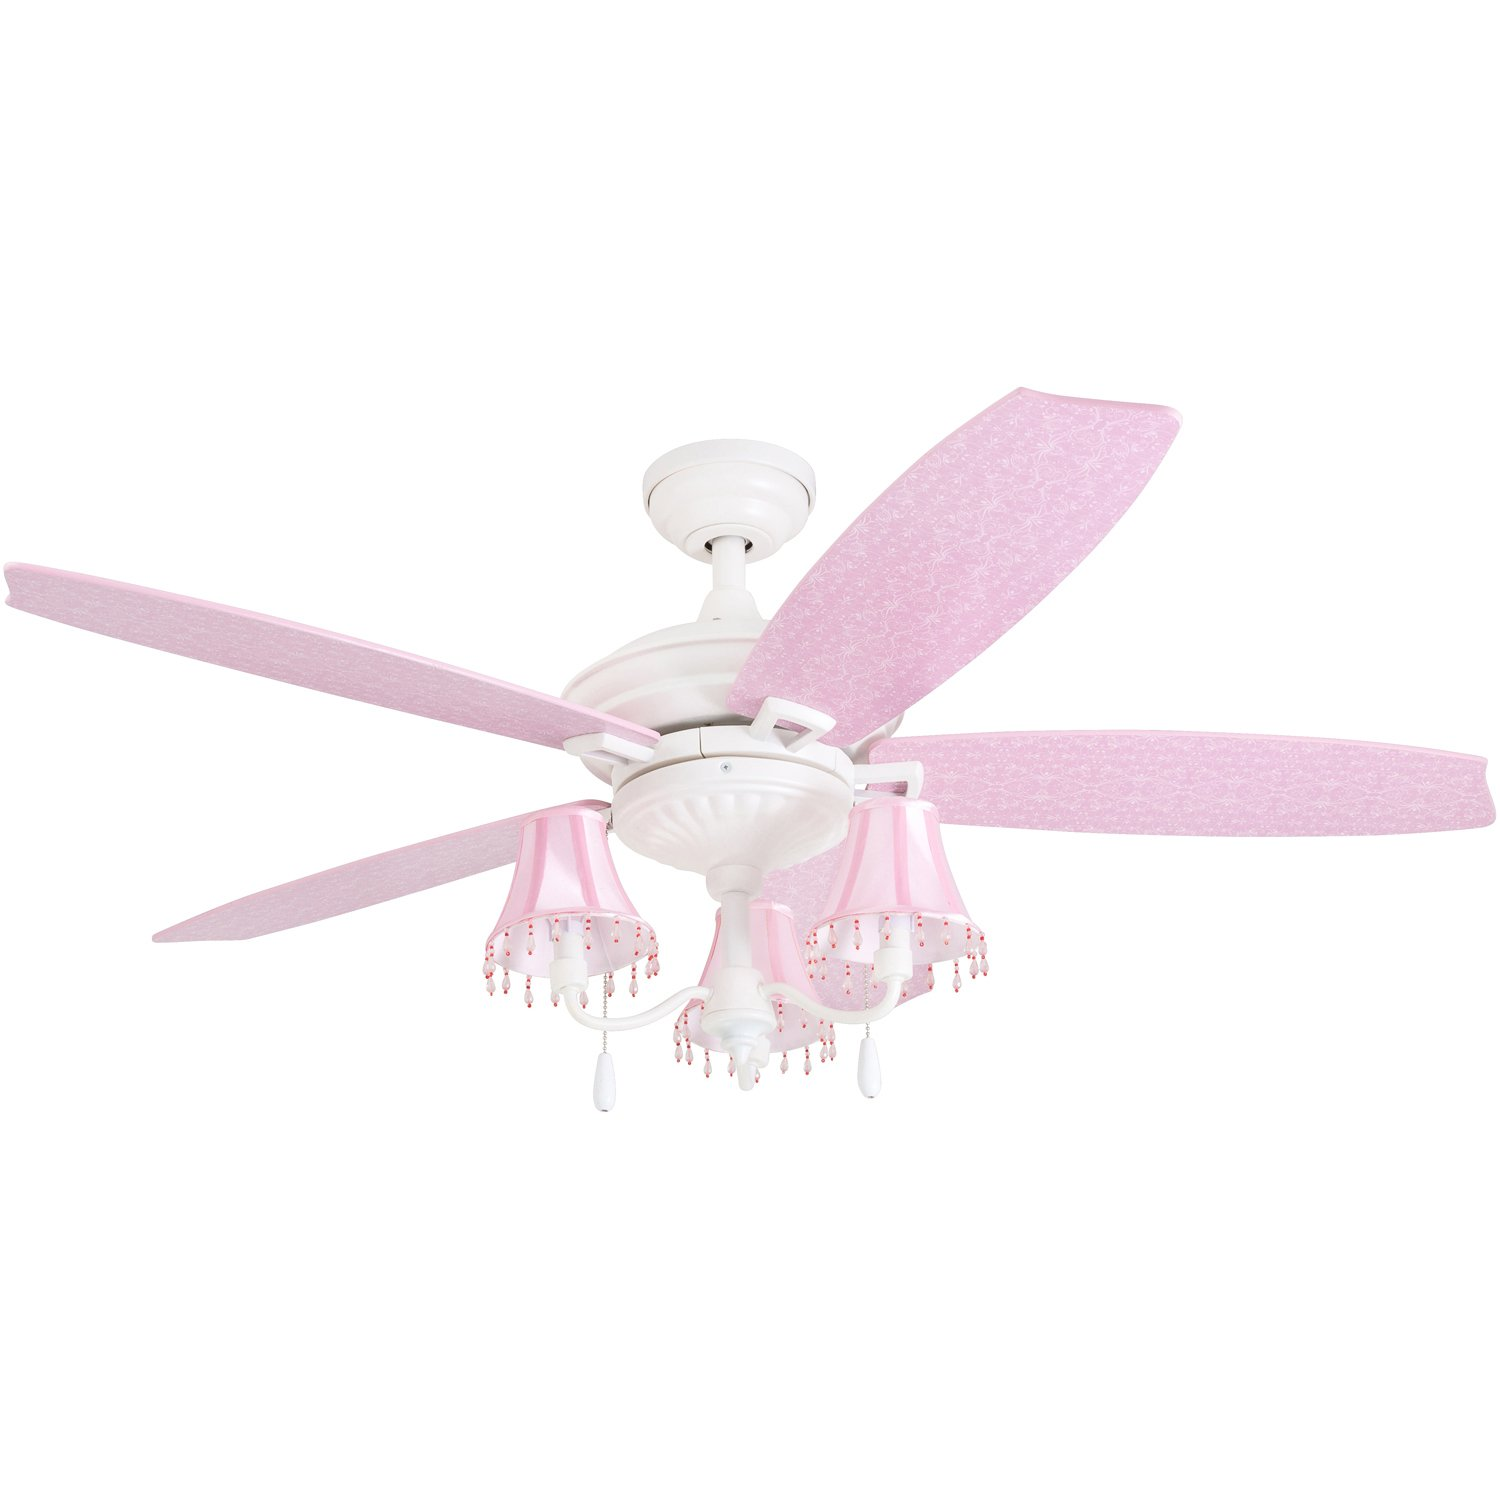 Prominence Home 41111-01 Addy 48'' Pink Ceiling, Chandelier Lamp Shades, Dusty Rose/Blushing Glow Fan Blades, Classic White